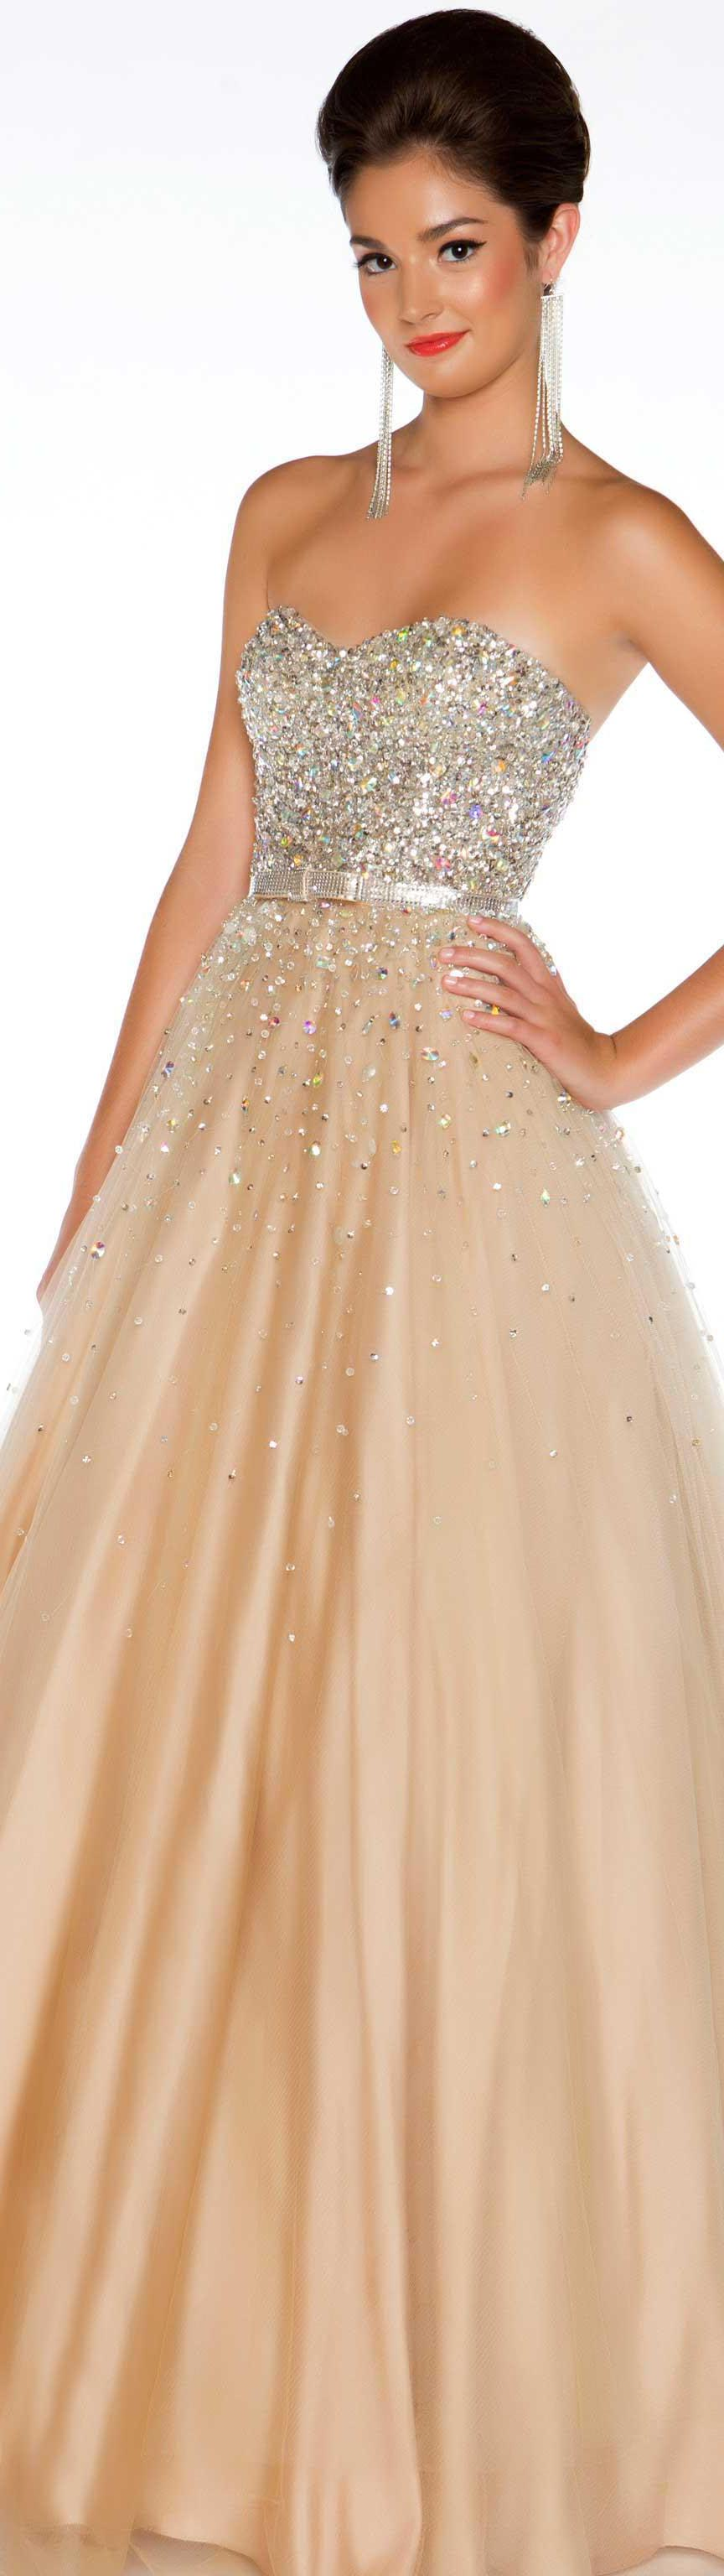 Mac duggal couture ball gowns style h uc gold for a princess